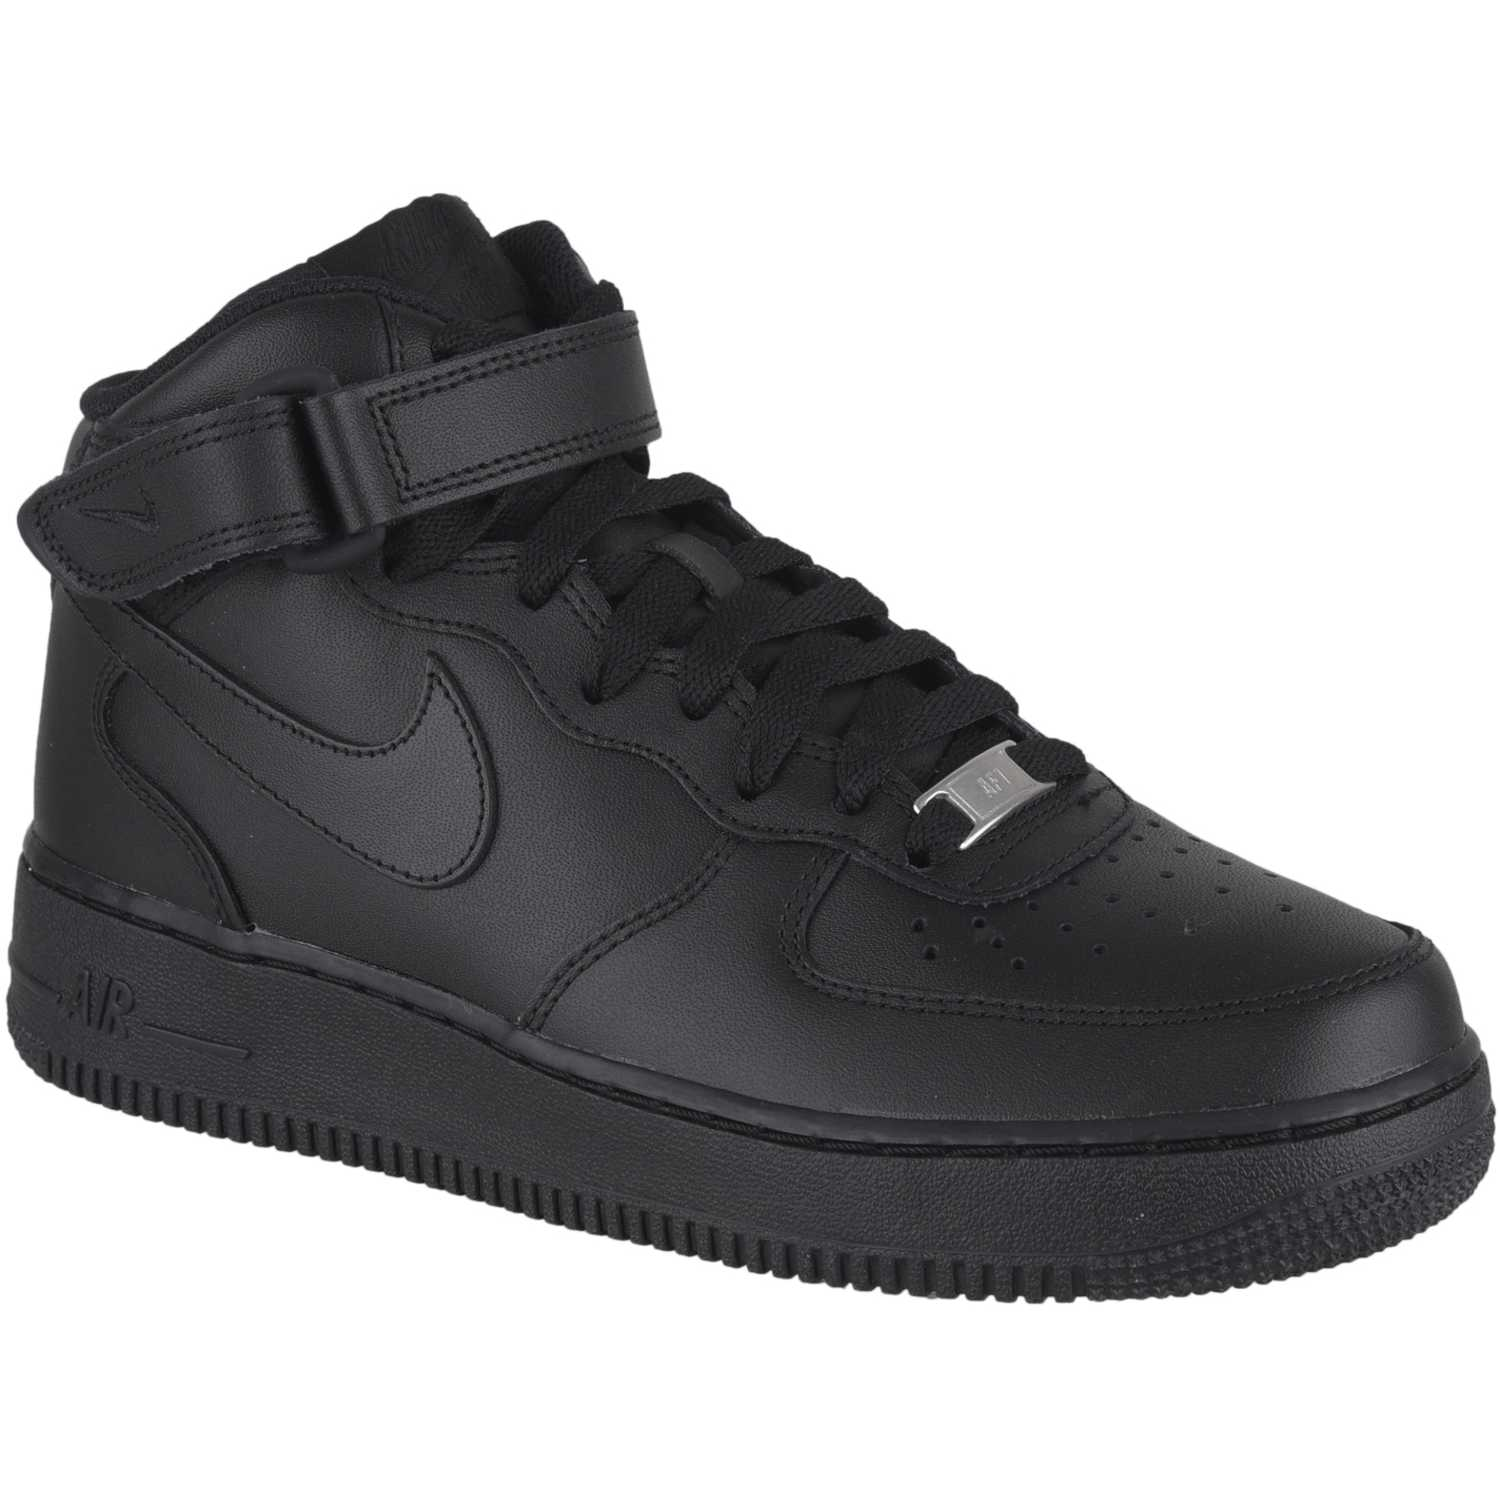 Casual de Hombre Nike Negro / negro air force 1 mid 07